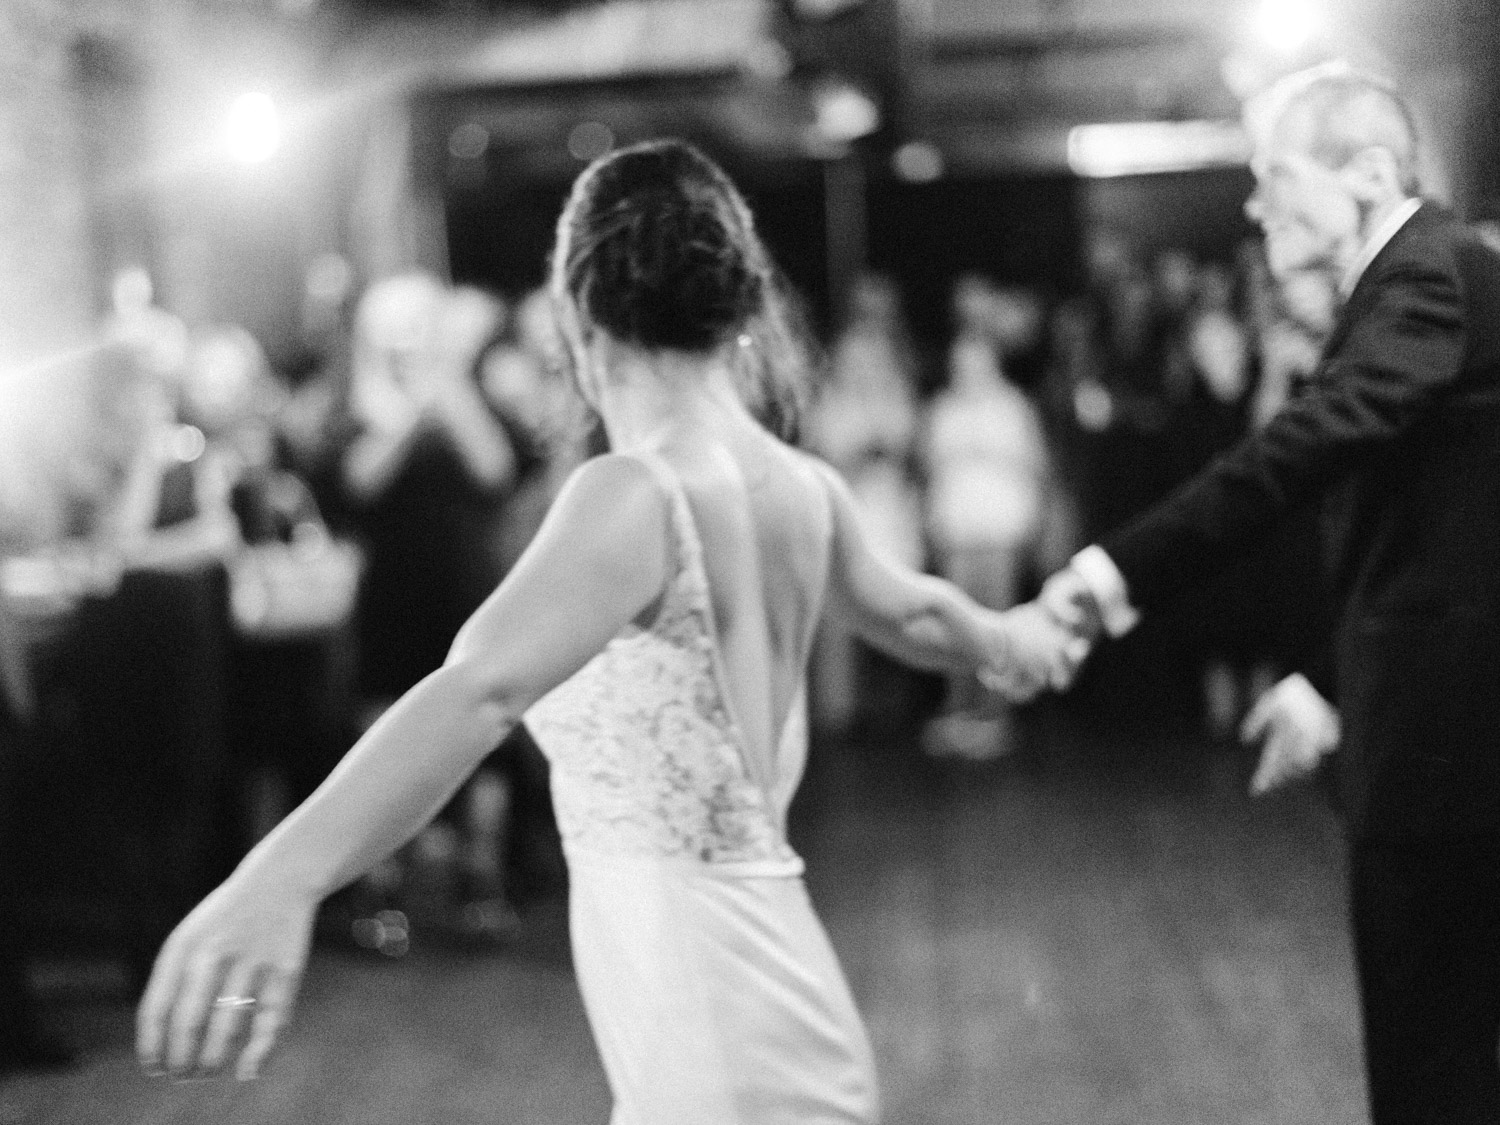 Emotional natural father daughter dance photograph from intimate Italian wedding  at The Burroughes.  Captured by Toronto wedding photographer Corynn Fowler Photography.